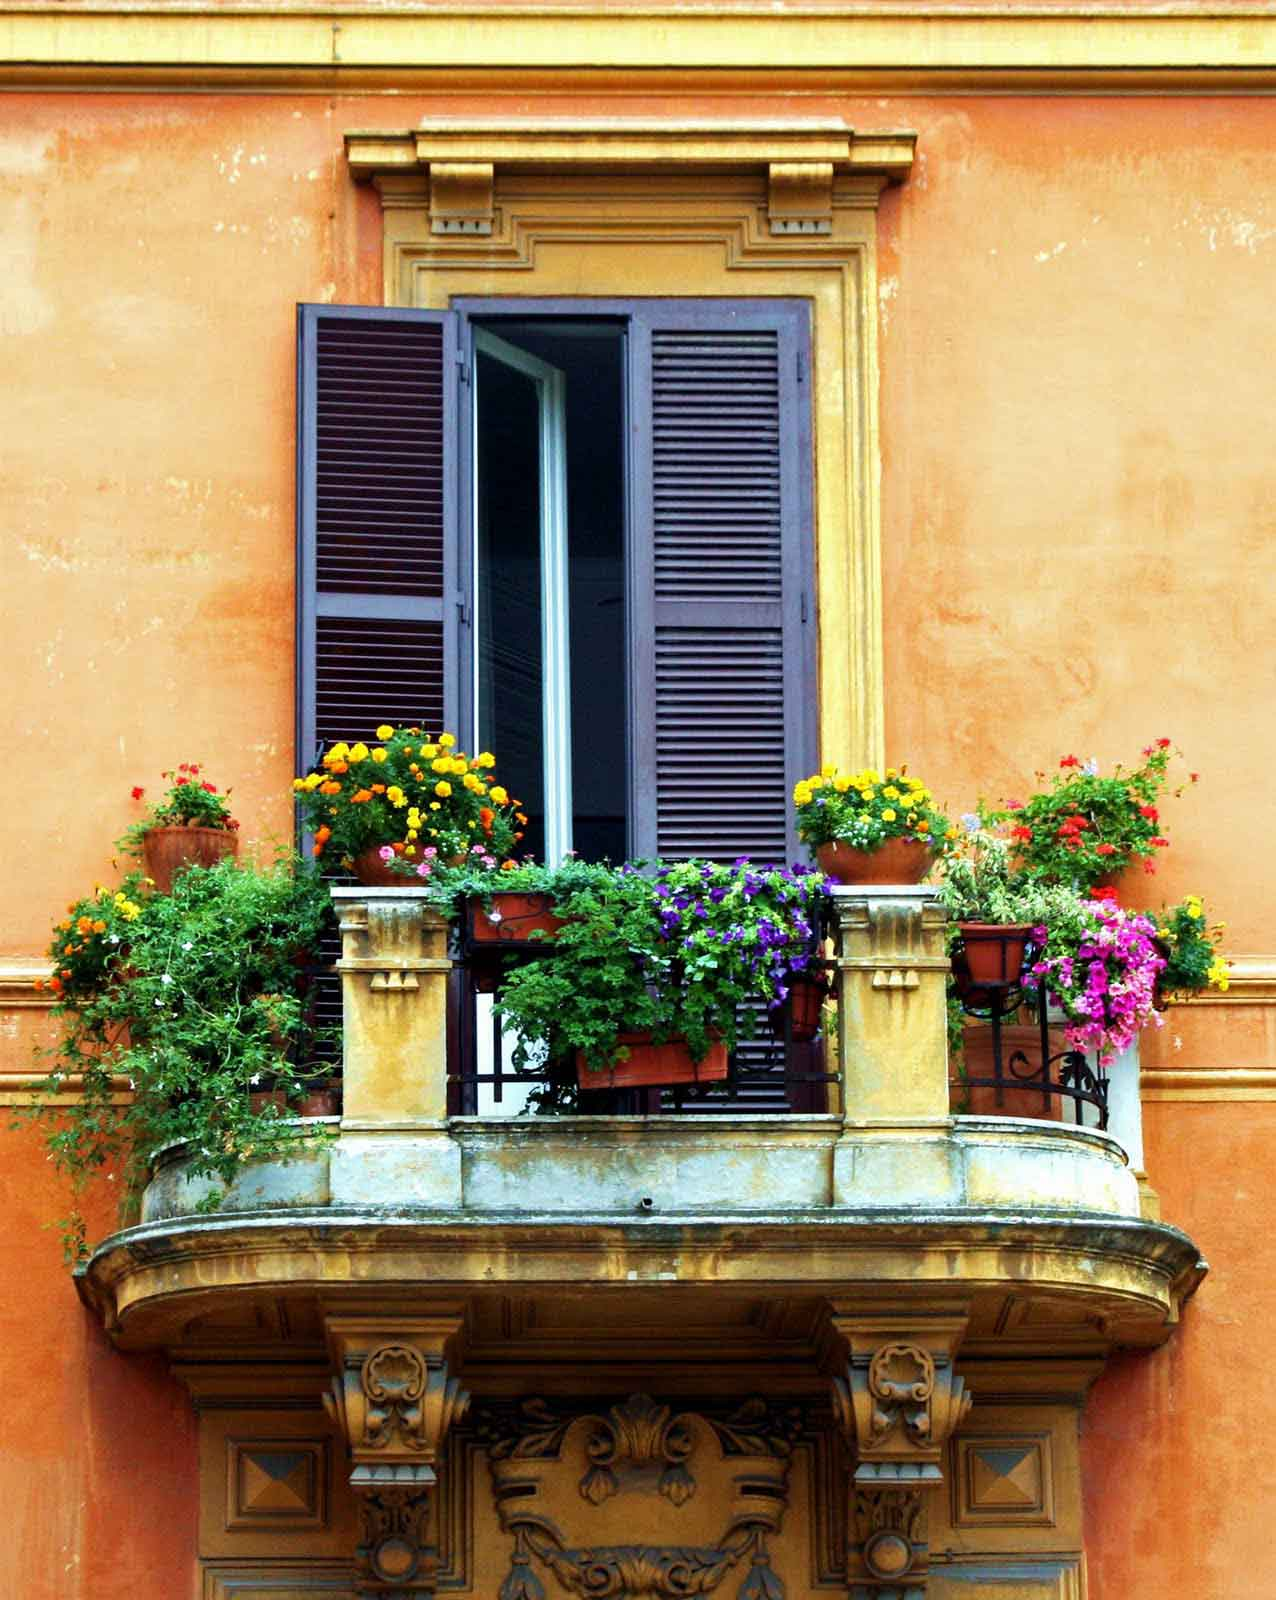 35 world 39 s most beautiful balconies your no 1 source of for In the balcony